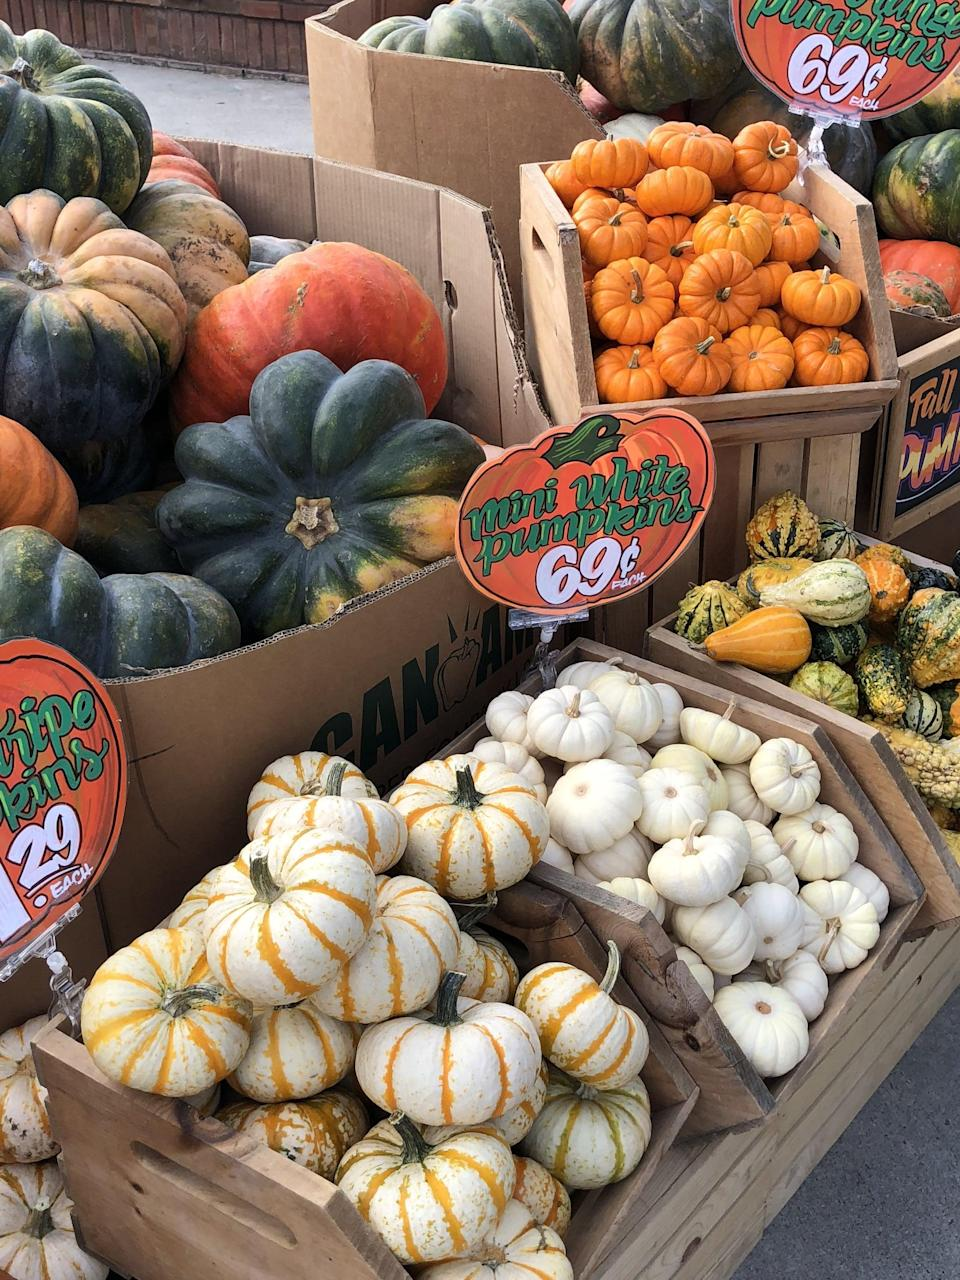 <p>Aside from pumpkin, you'll find tons of in season squashes like acorn, delicate (my fave!), butternut, and spaghetti. They also have adorable mini pumpkins and gourds to add a little seasonal joy to your home.</p>